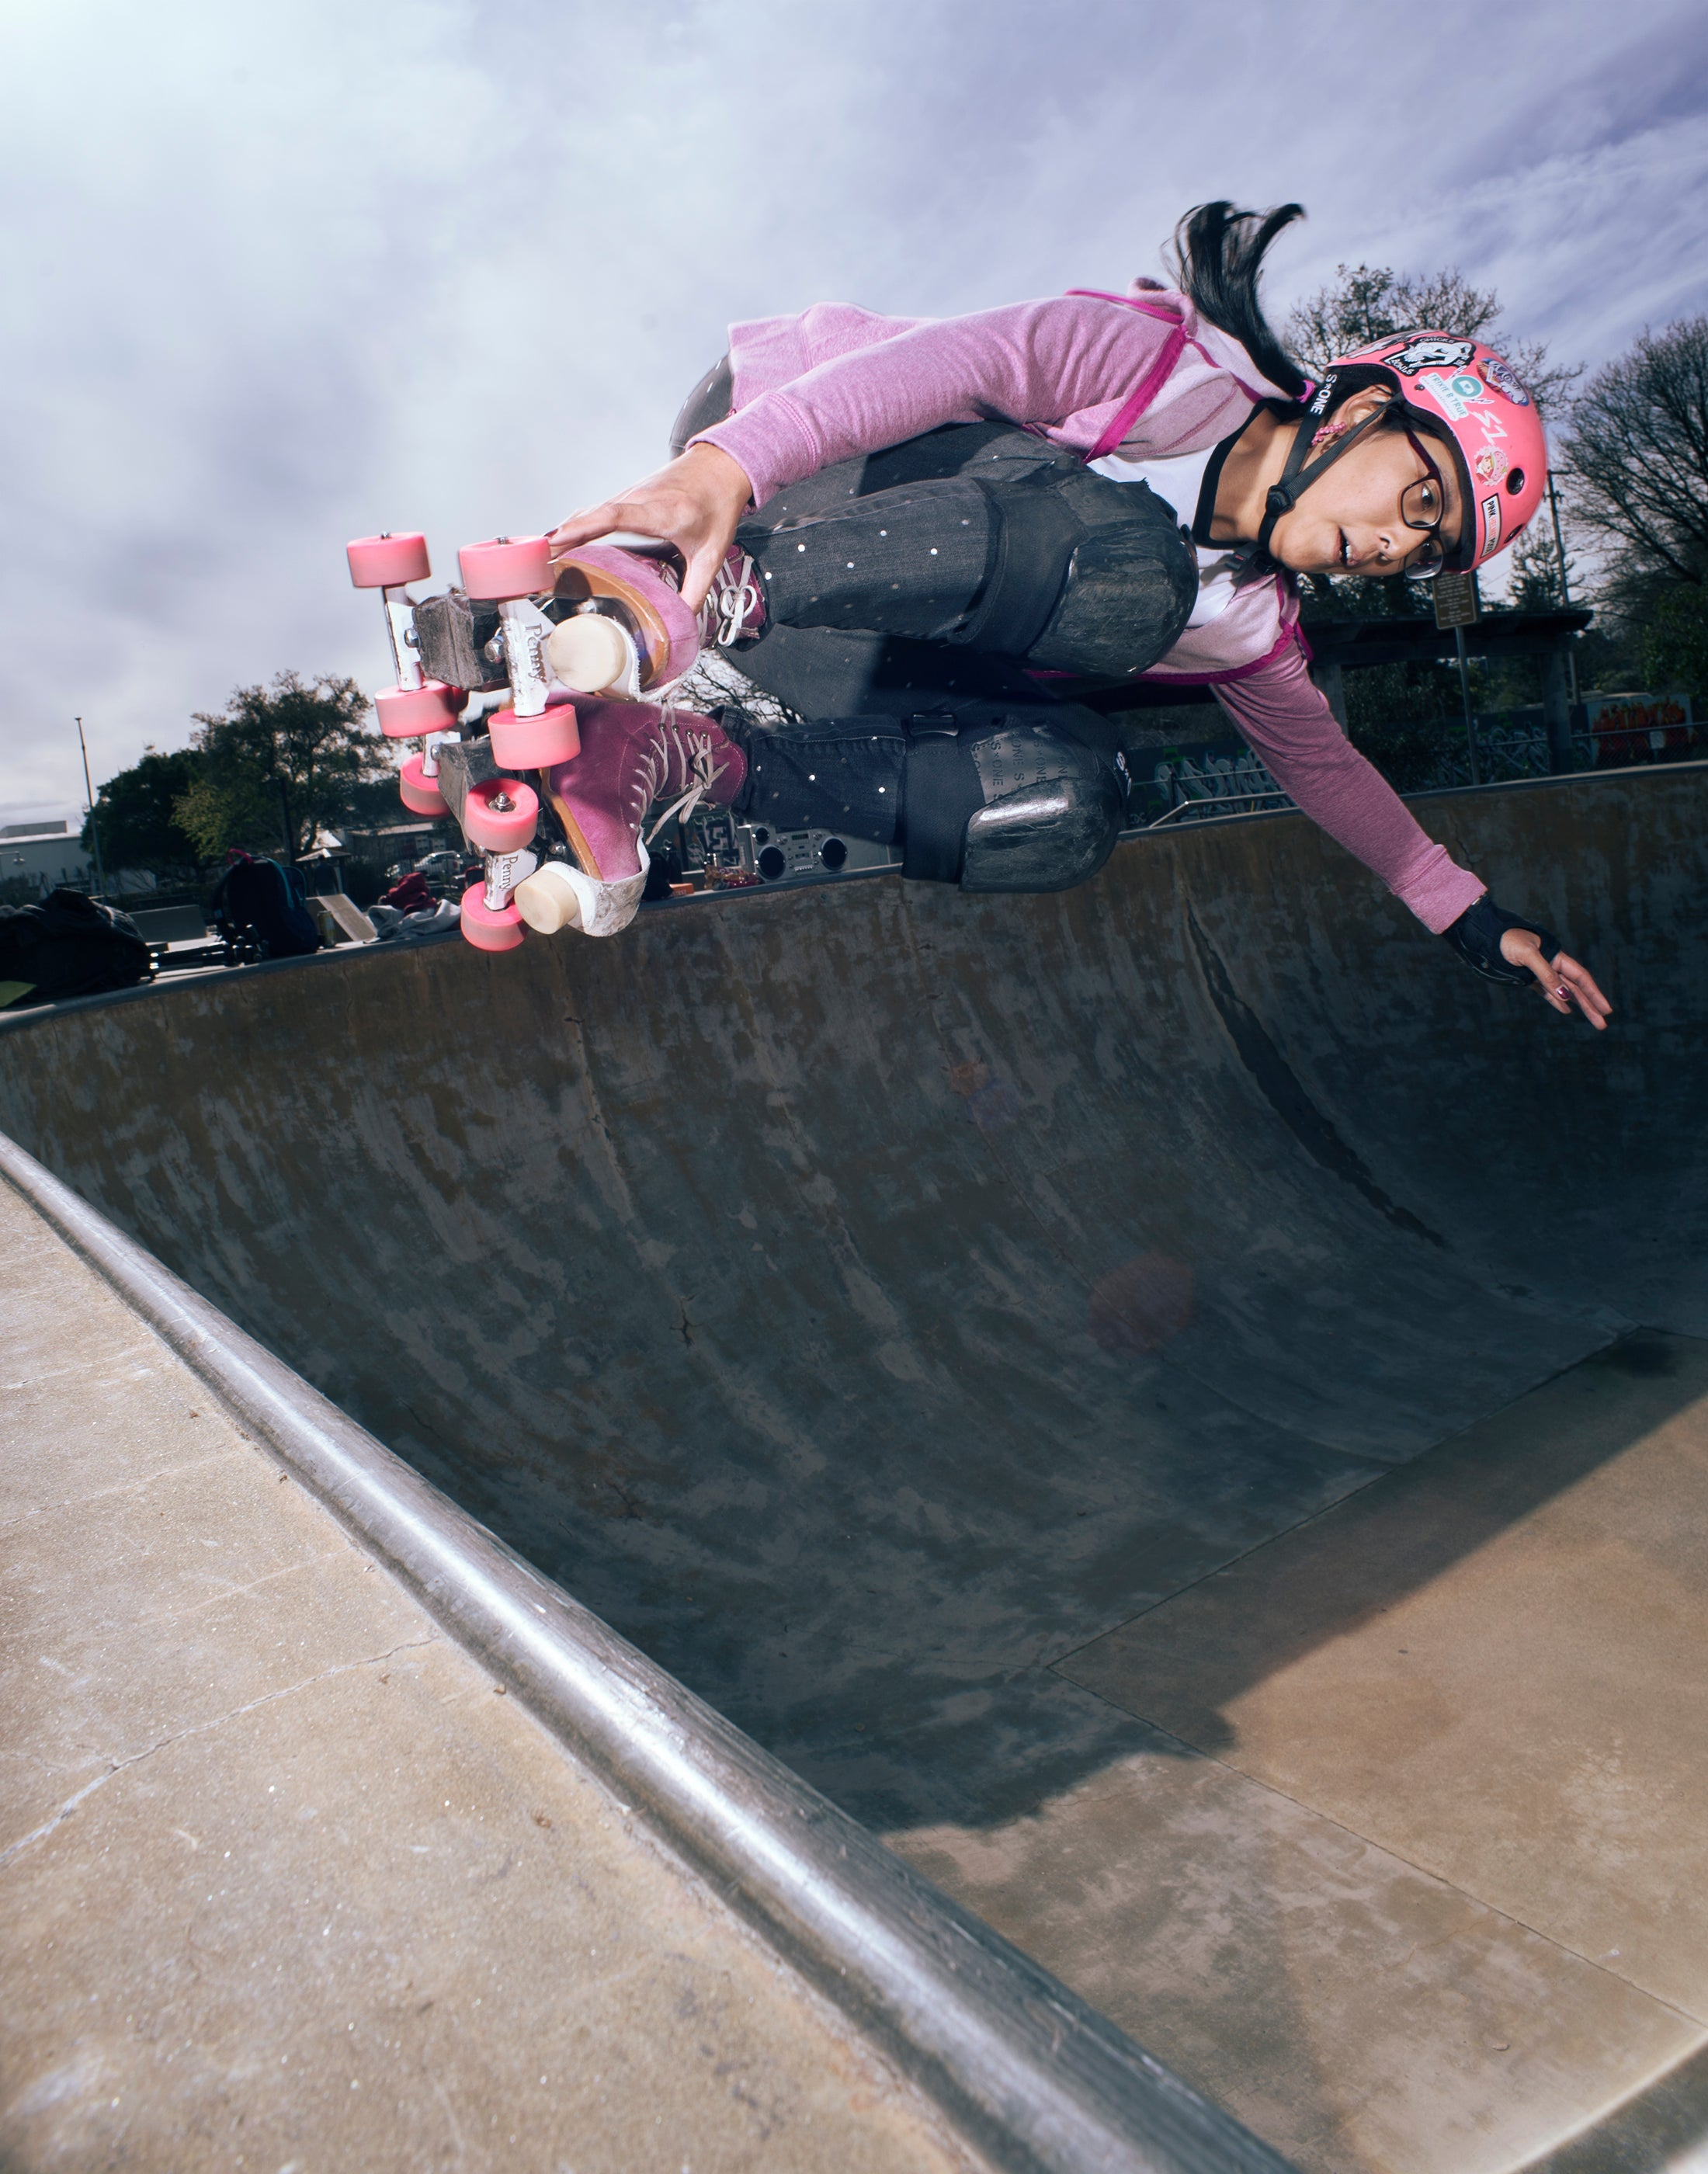 Lil Miss Fiasco with a massive air - Photo by Dave Rollins